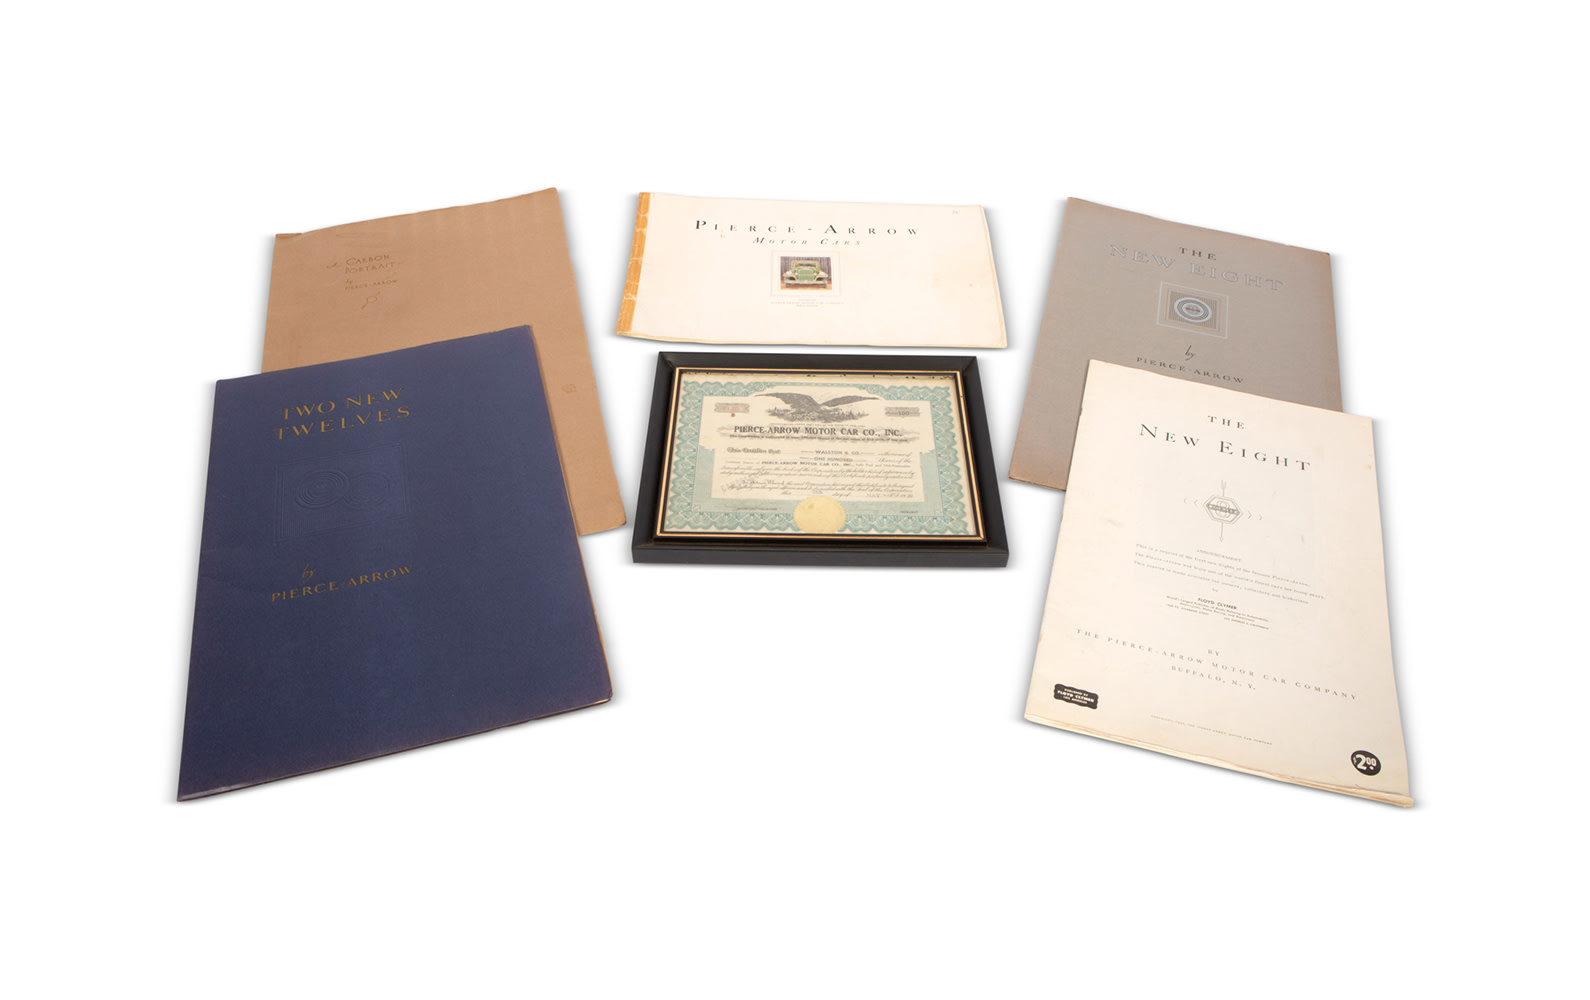 Pierce-Arrow Stock Certificate (1930) and Assorted Sales Literature for Eight- and Twelve-Cylinder Models, c. 1930–1935